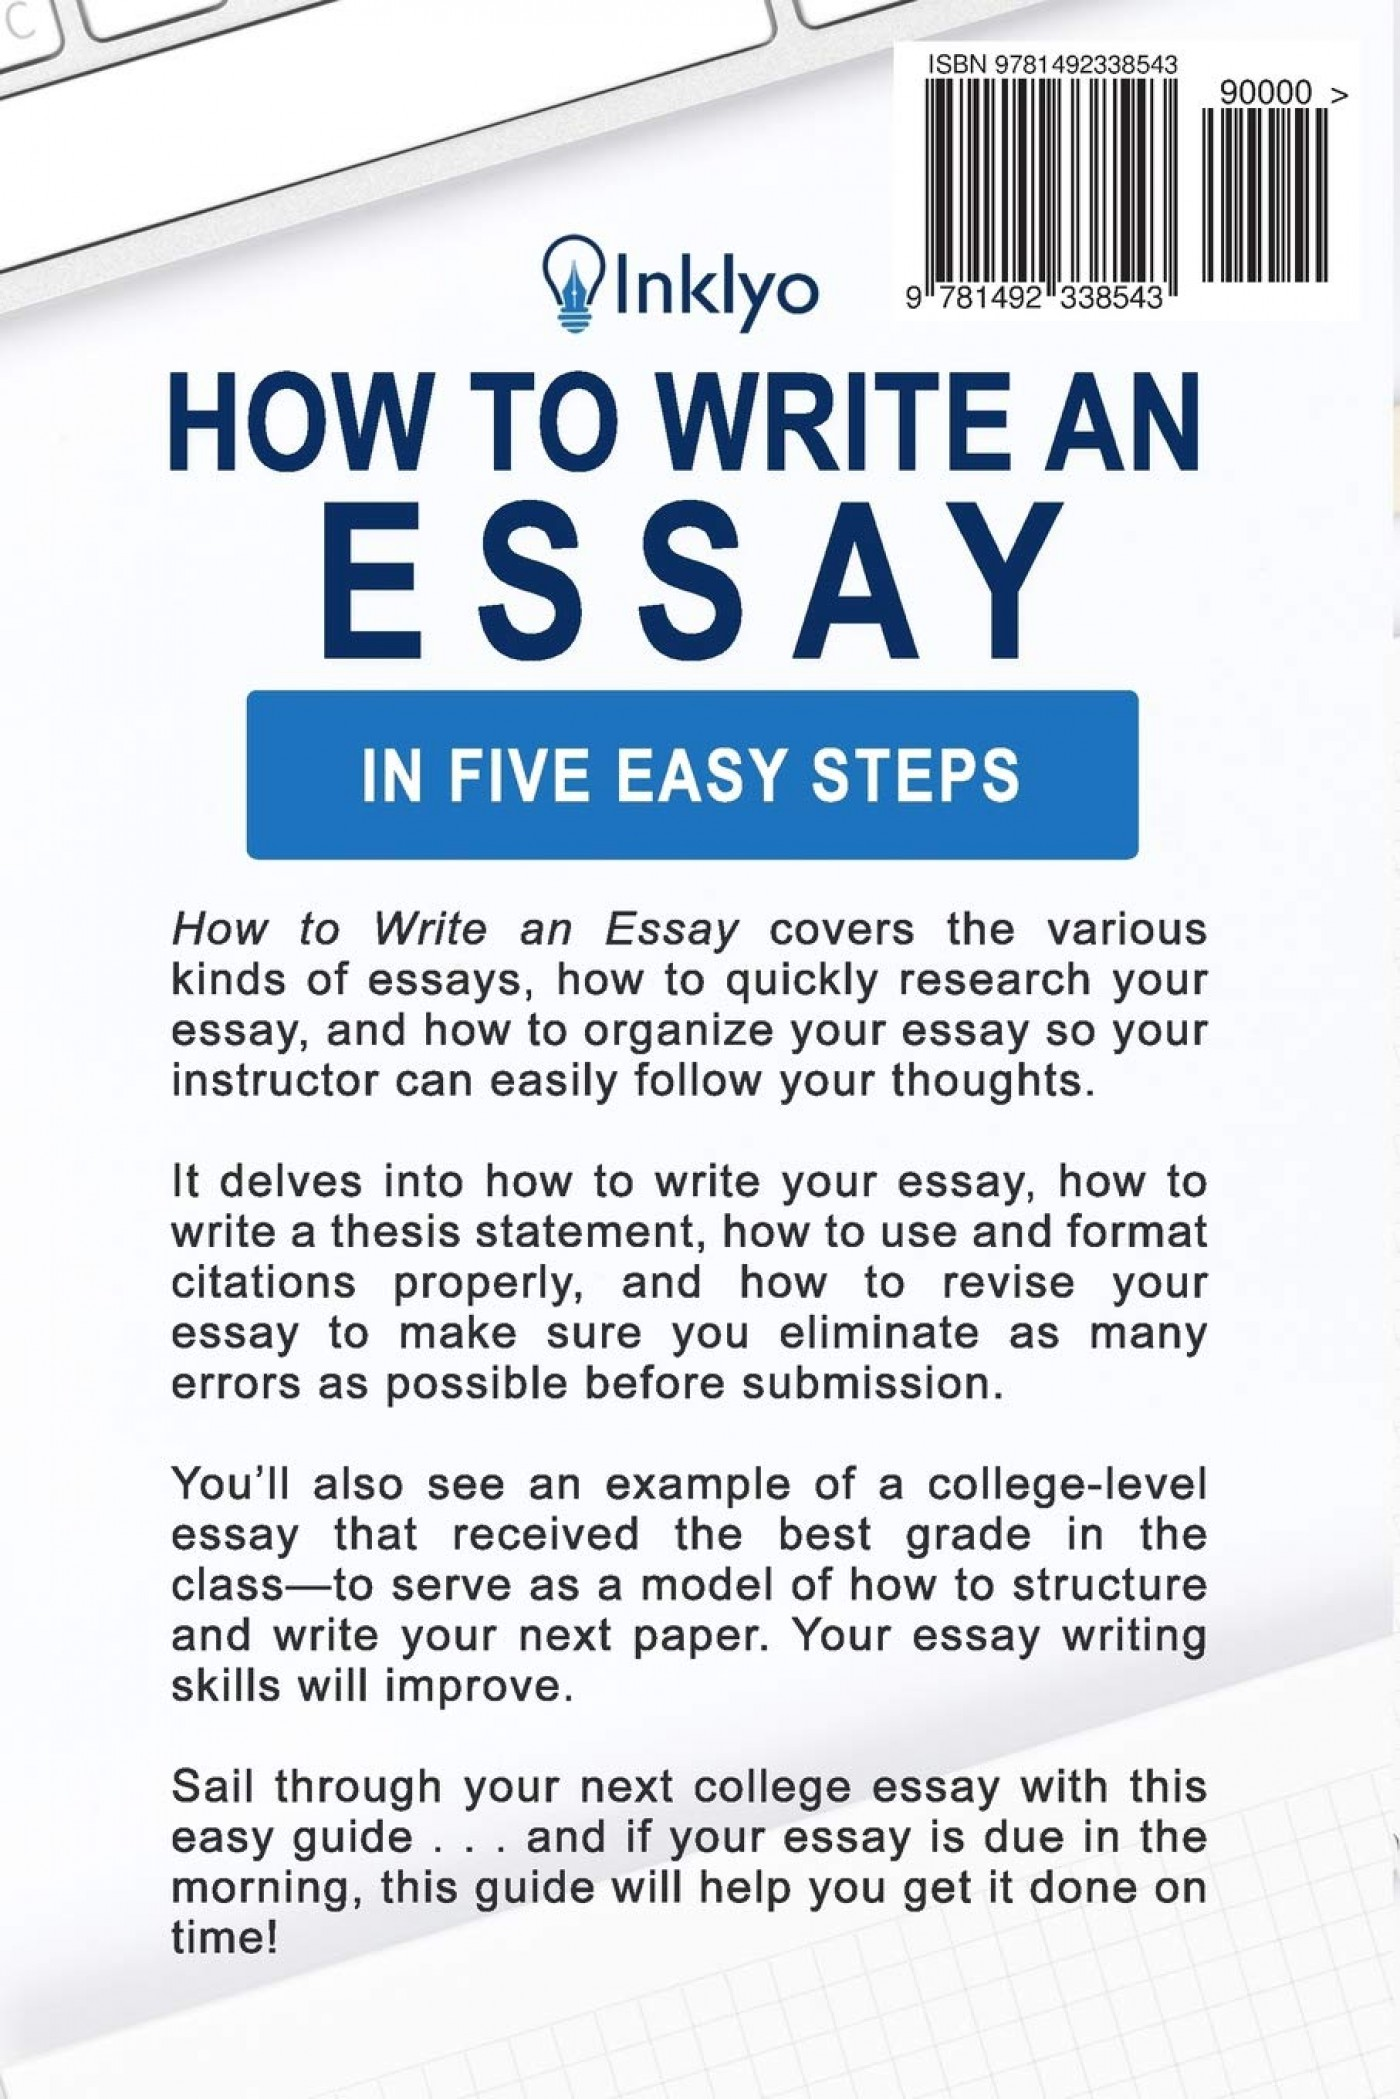 002 How To Write An Essay Example Shocking Conclusion About Yourself For College Examples 1400